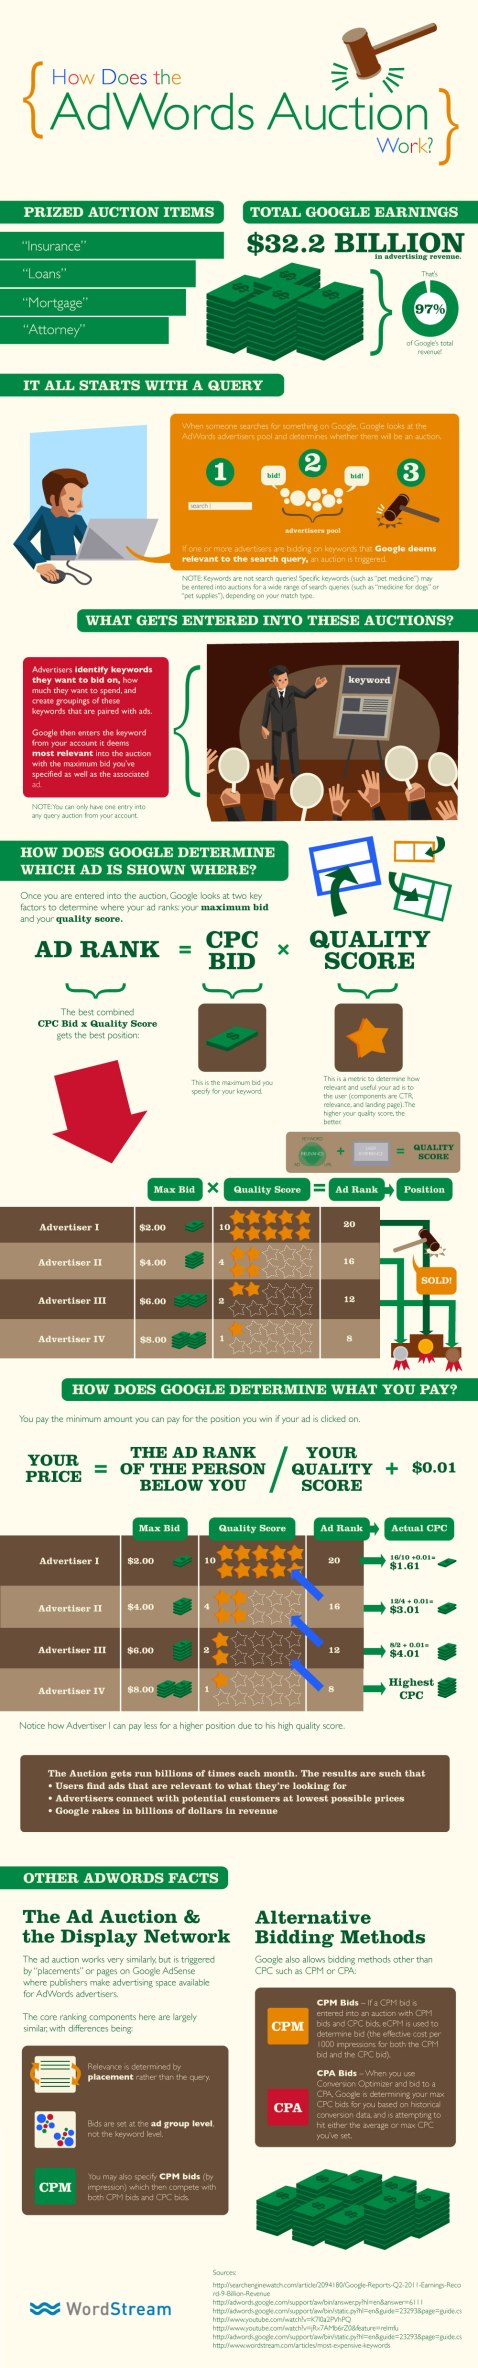 What Is Google AdWords? How the AdWords Auction Works | WordStream